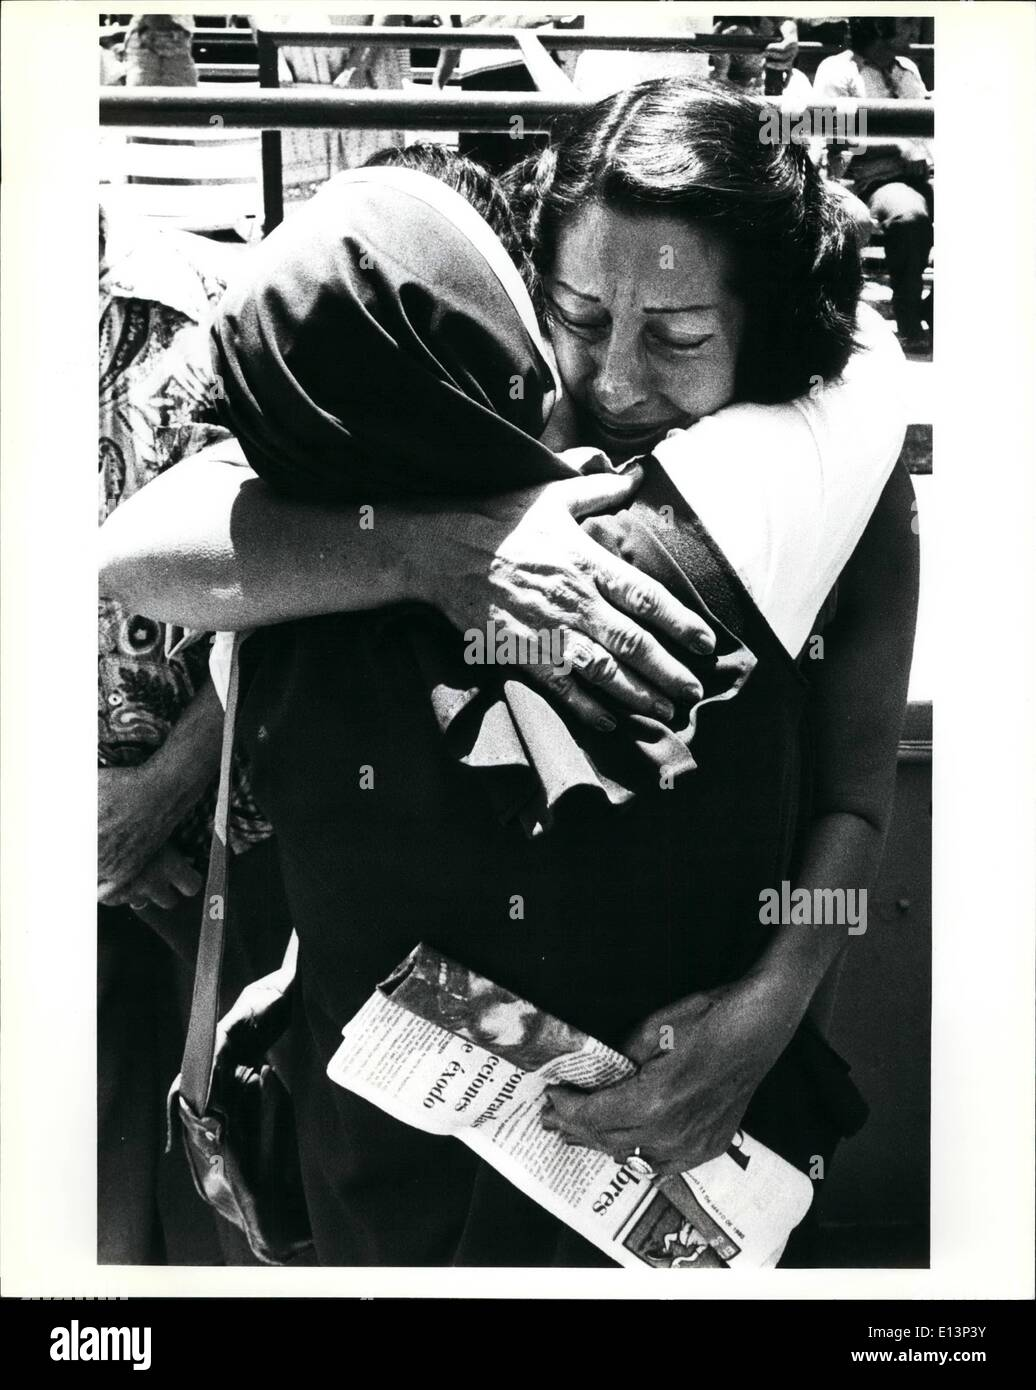 Mar. 22, 2012 - A Cuban refugee woman gives a tearful hug to a nun after the sister had helped deliver the first mass to the refugees since they arrived in the U.S. The mass was performed in the Orange Bowl in Miami. The Orange Bowl was used as a holding area for the refugees before they were move to processing centers in the Miami area. - Stock Image